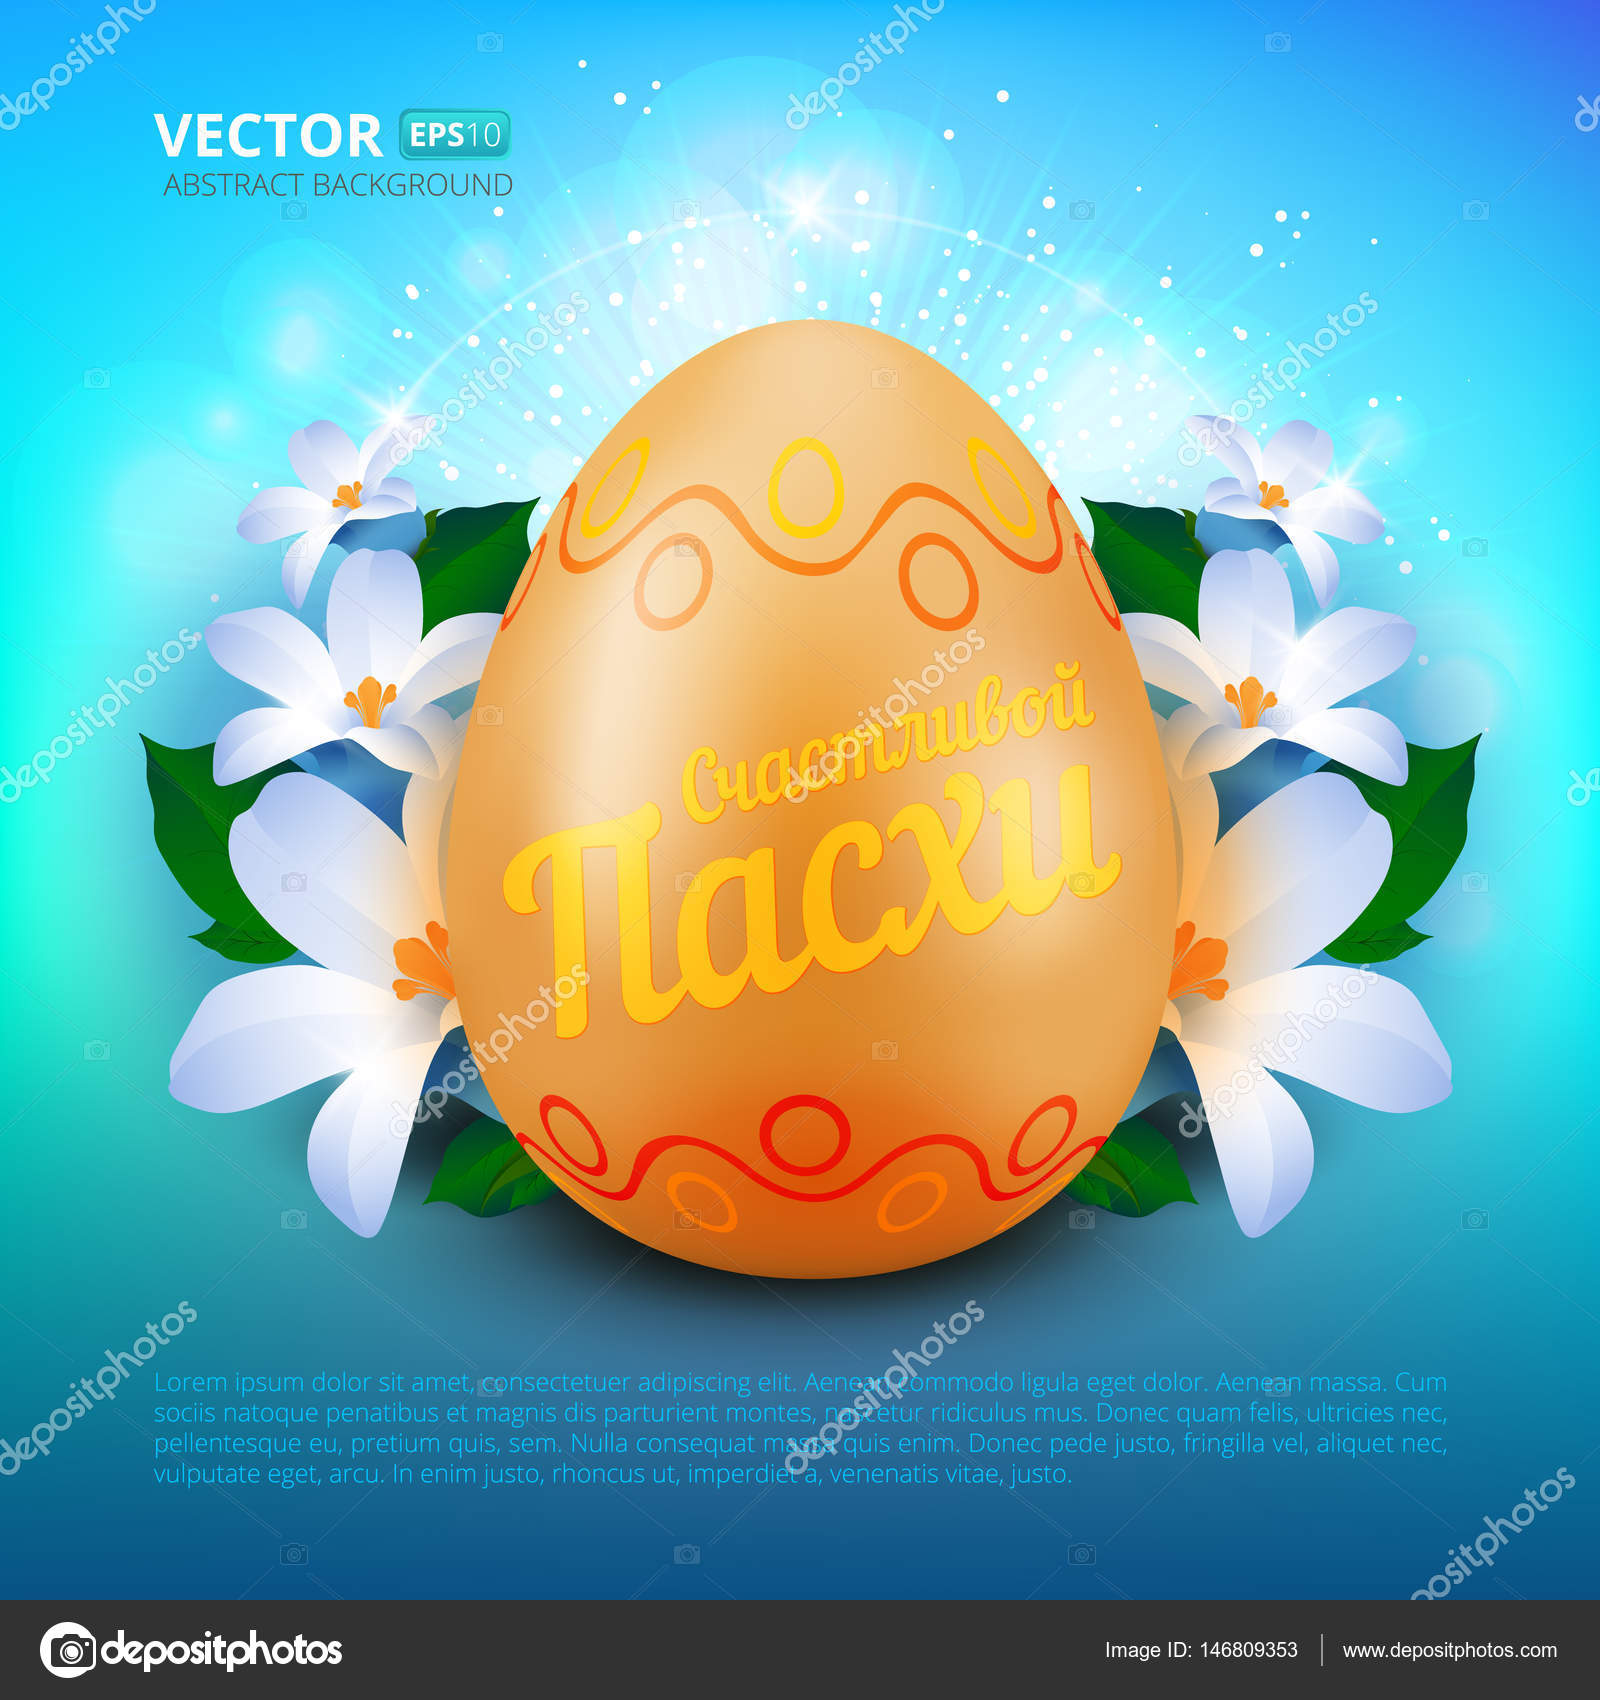 Happy easter greeting card with painted egg and spring flowers on happy easter greeting card with painted egg and spring flowers on colorful background with russian text eng happy easter use this vector illustration m4hsunfo